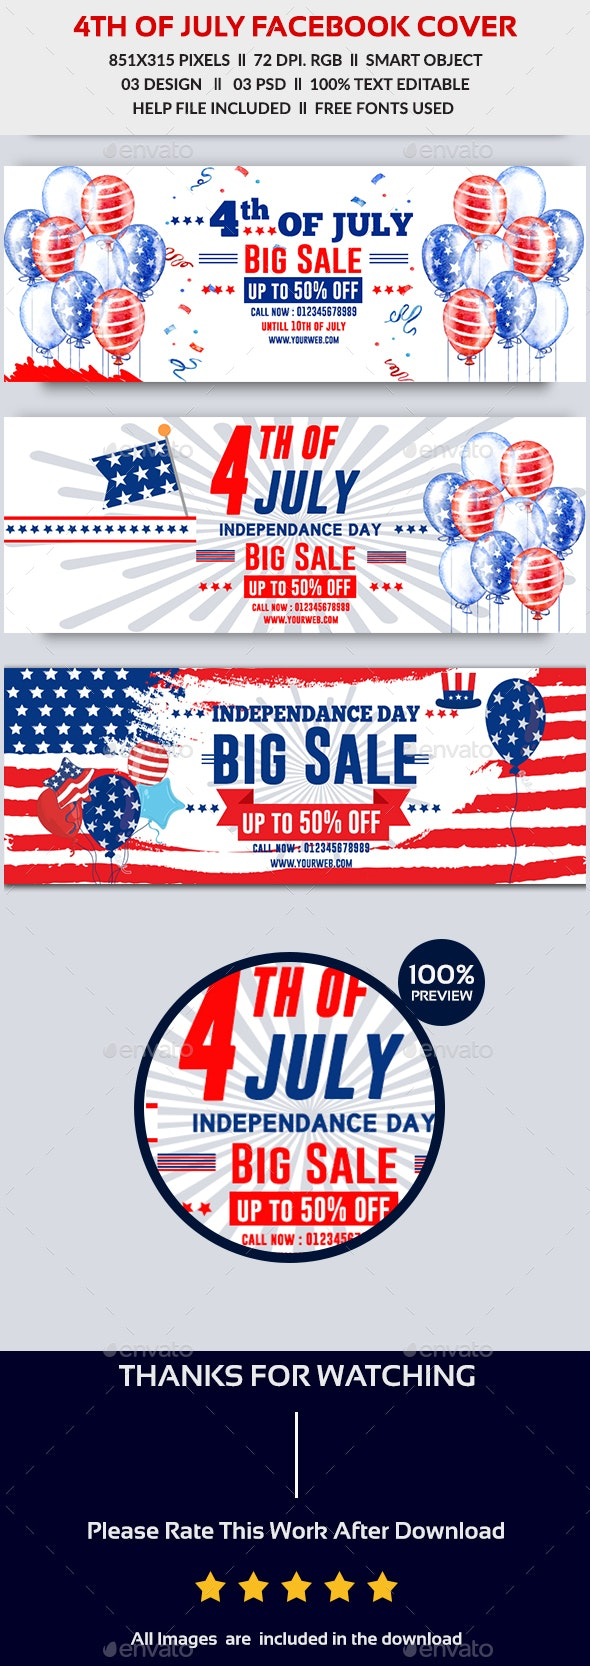 4th of July Sale Facebook Cover - Facebook Timeline Covers Social Media